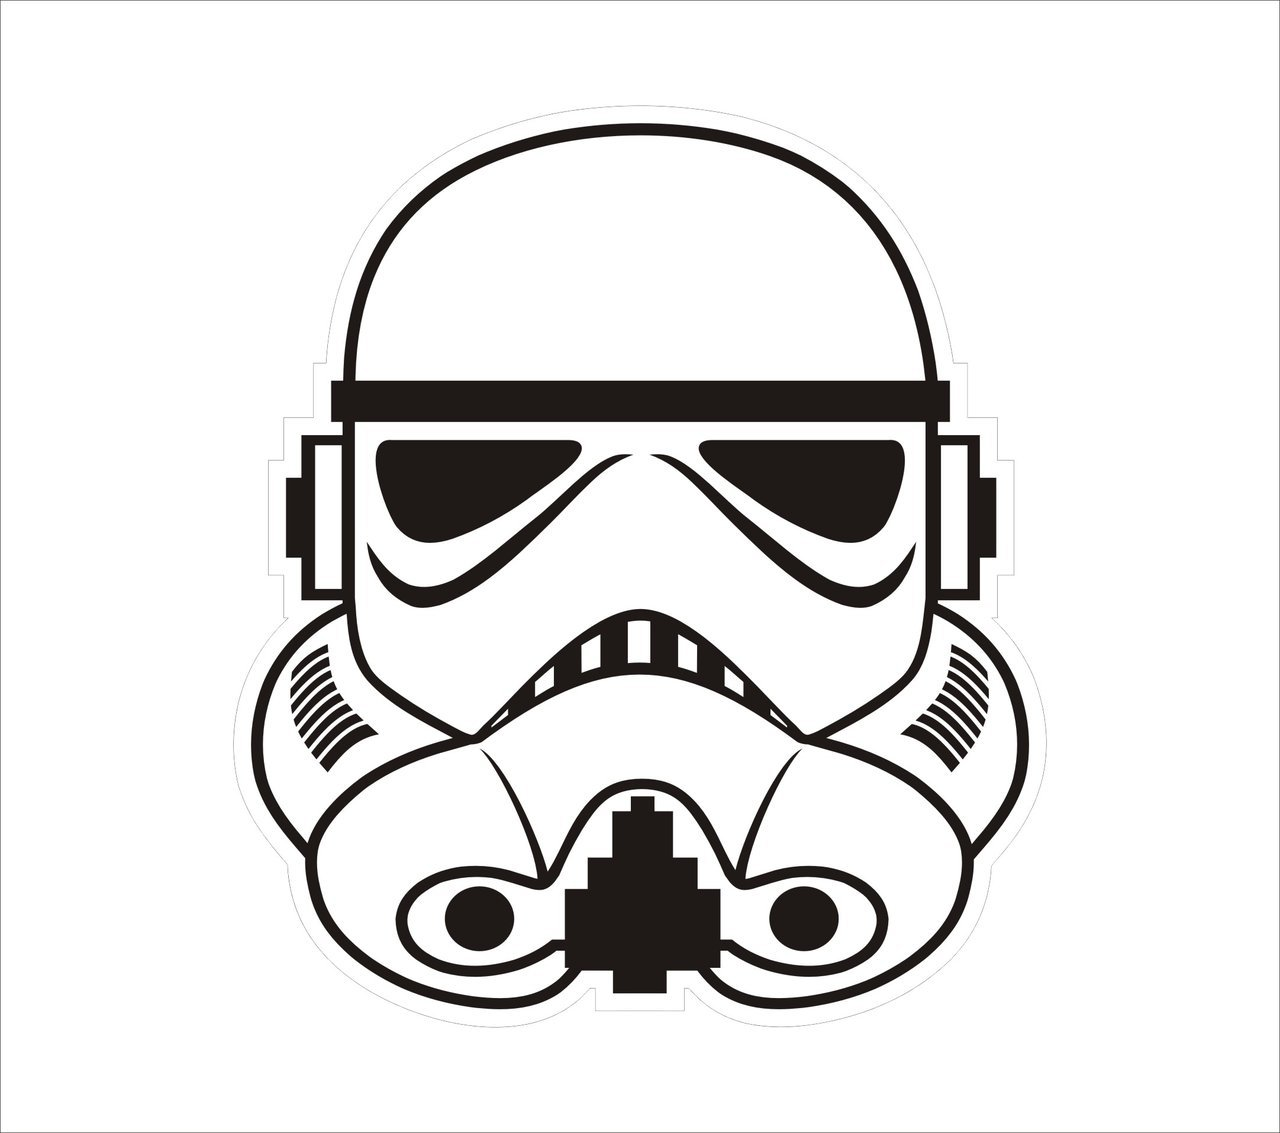 1280x1133 Stormtrooper Helmet Graphic By Markalbiar